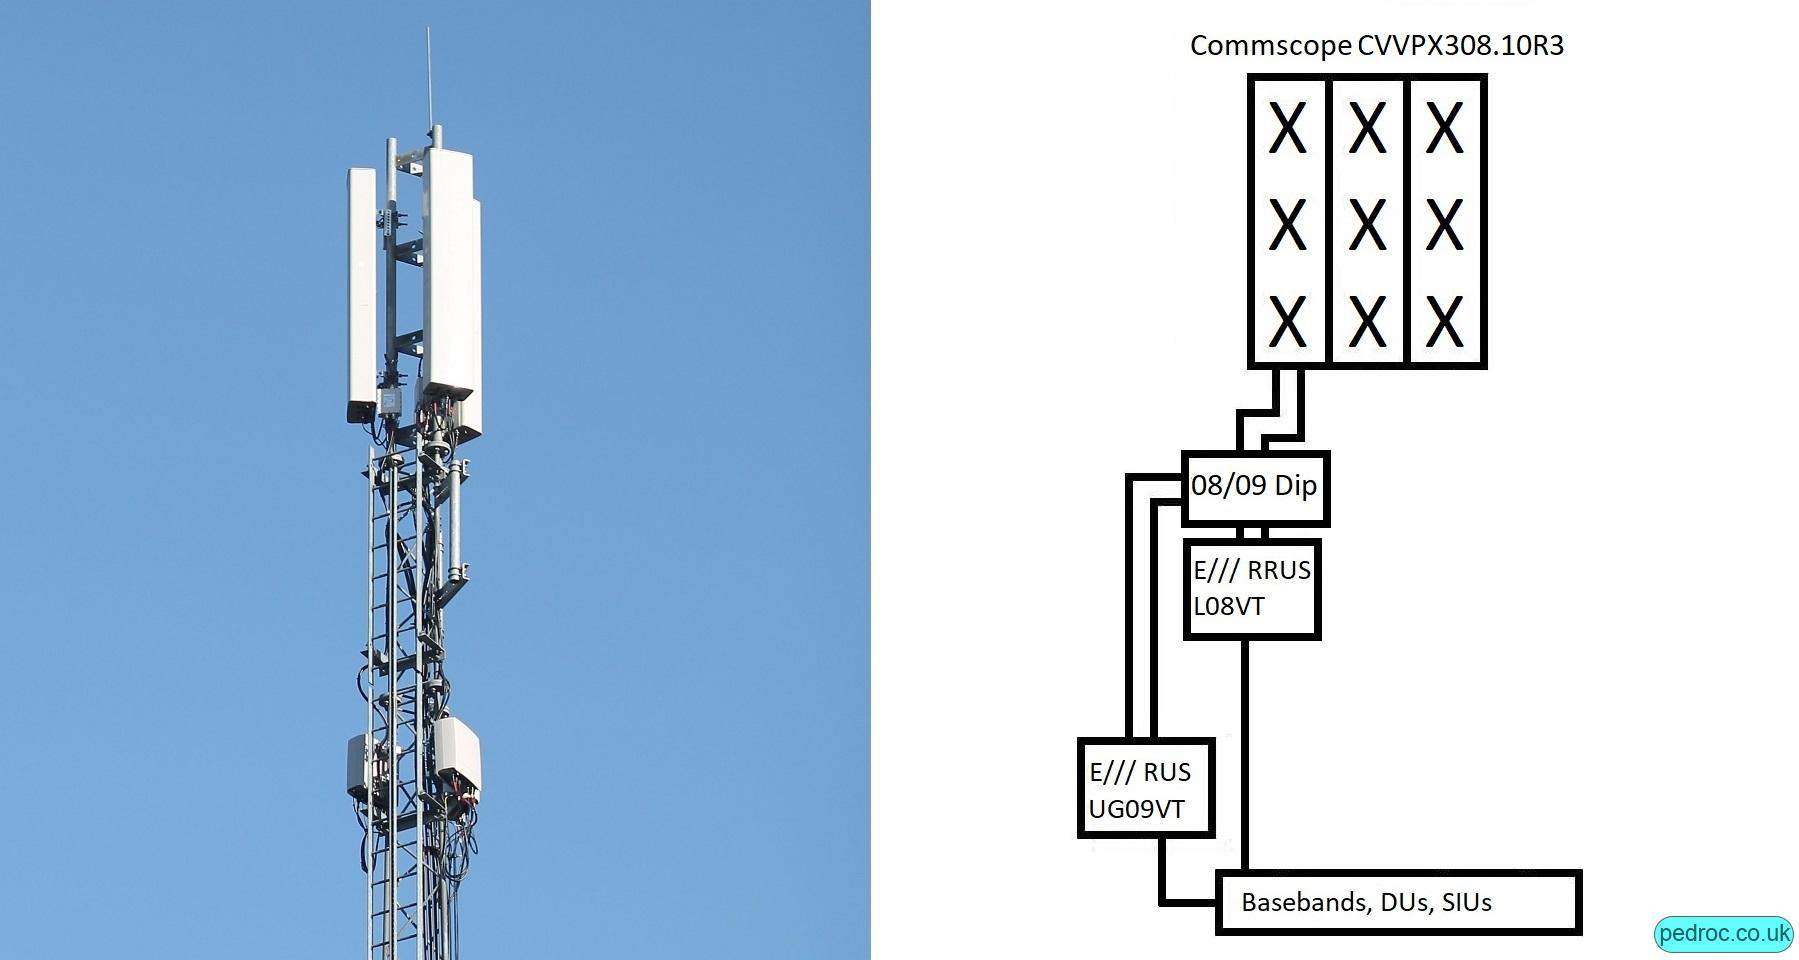 Commscope CVVPX308.10R3 antennas, Ericsson RRUS11, Vodafone low band, low capacity site.